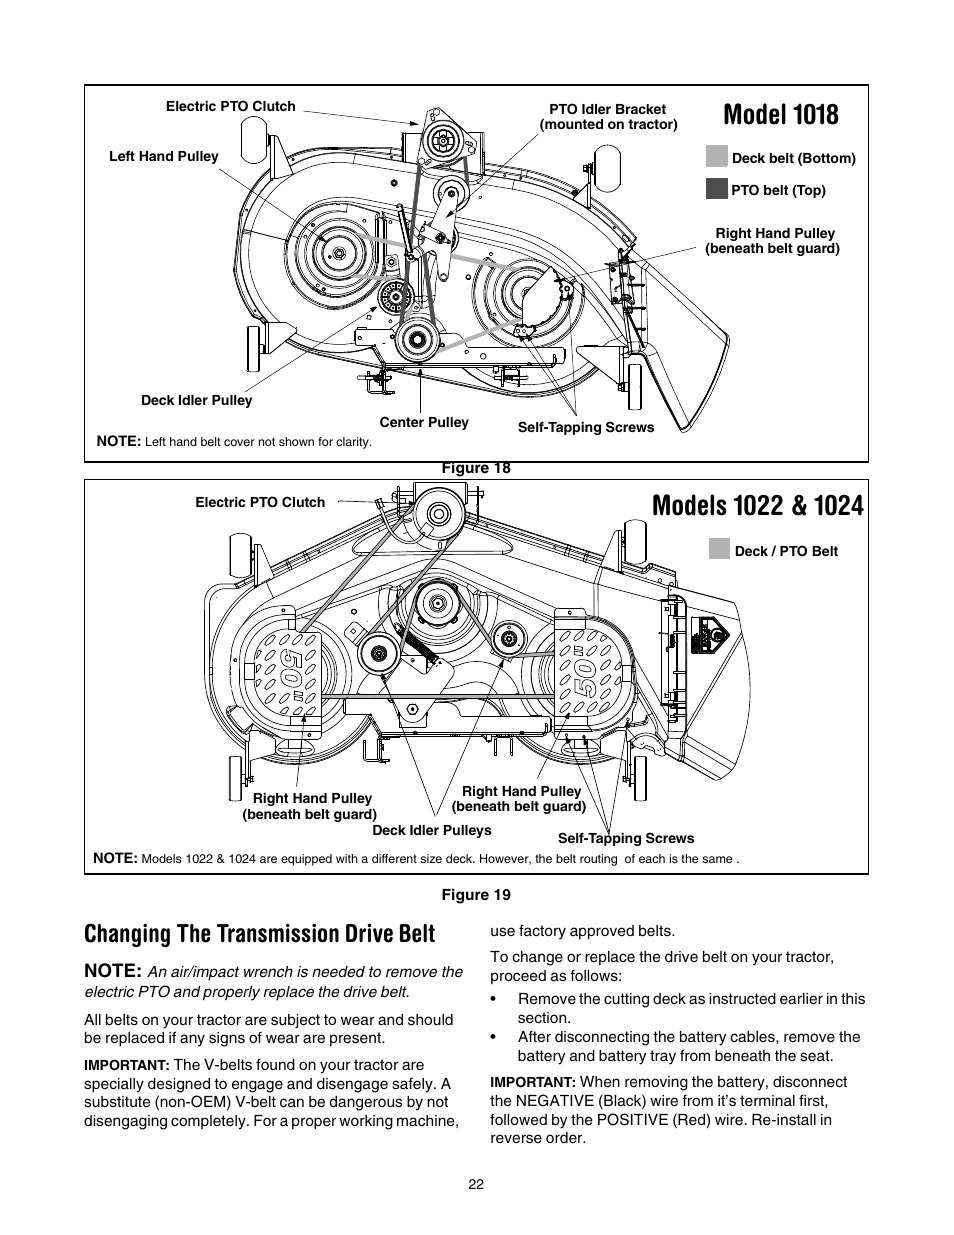 hight resolution of cub cadet pto belt diagram wiring diagram usedcub cadet deck belt diagram cub cadet electric pto